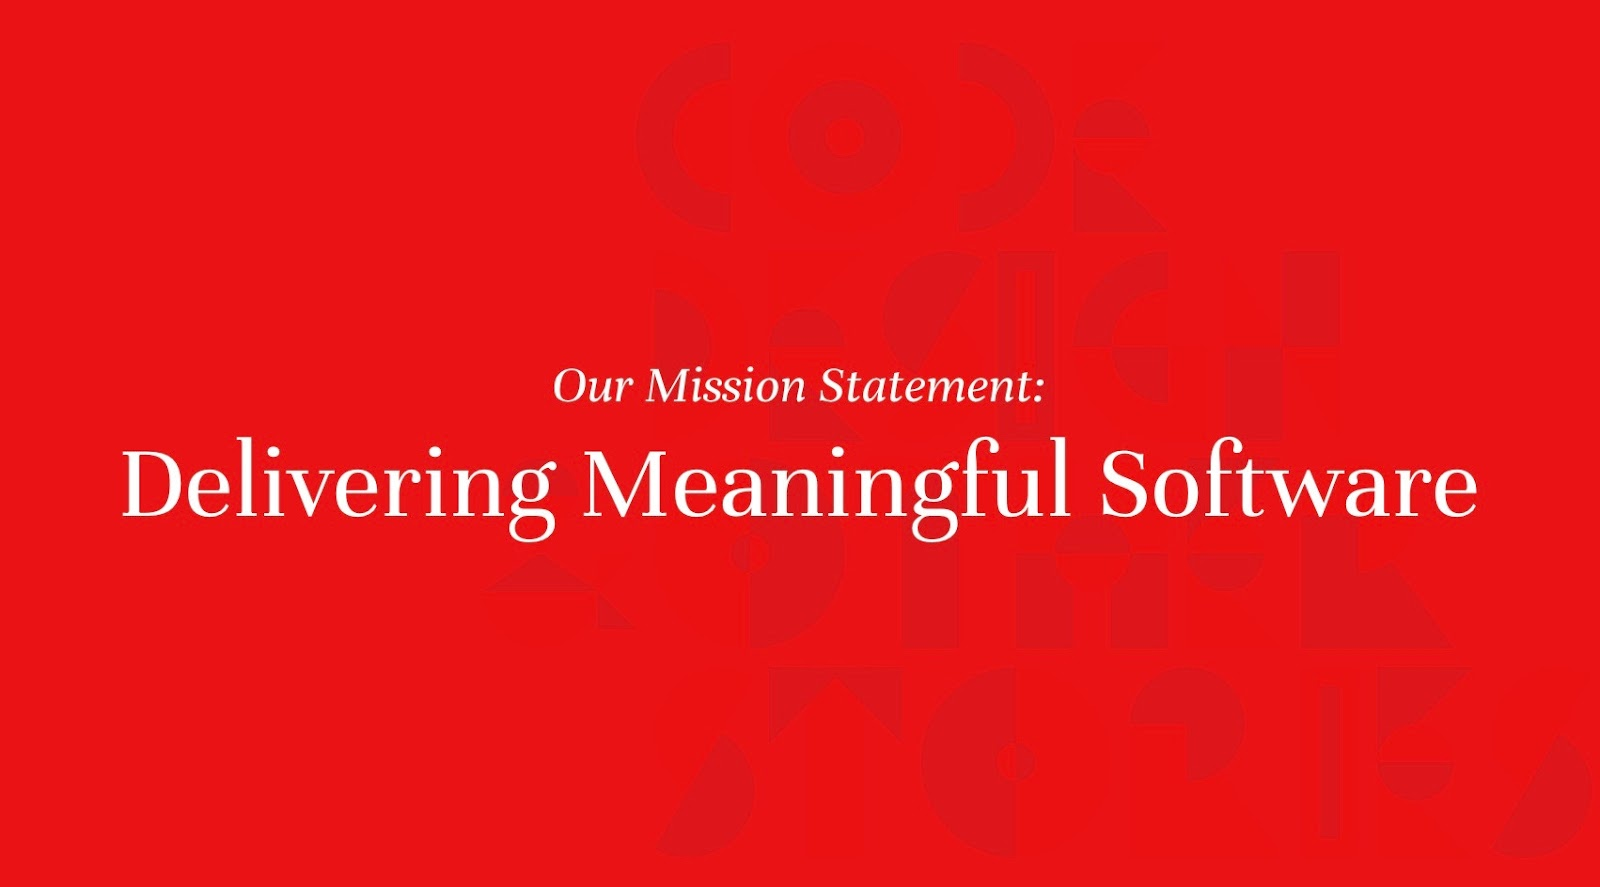 Monterail's Mission Statement—Delivering Meaningful Software